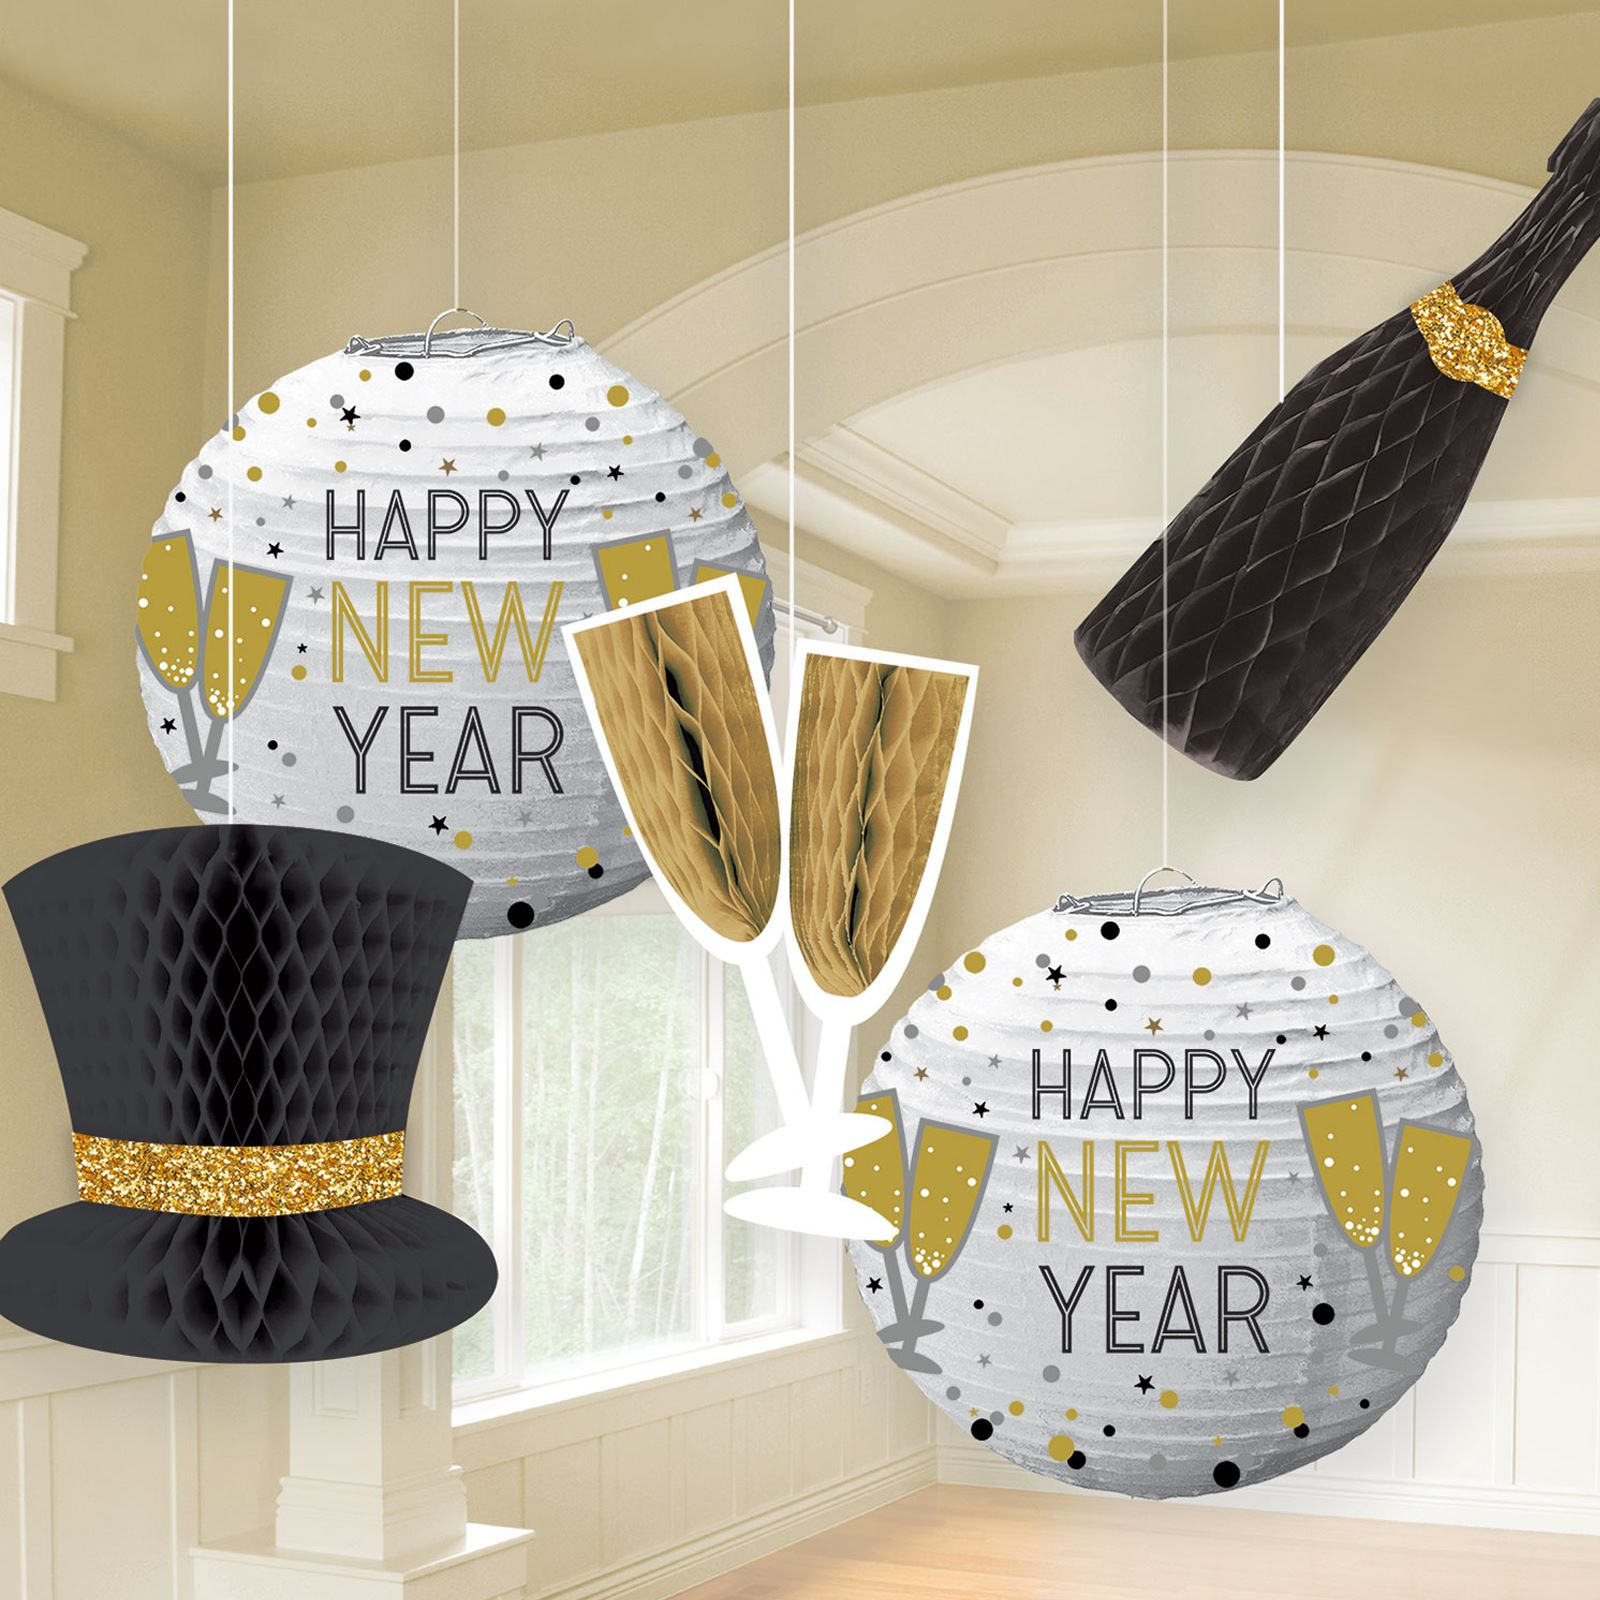 Happy New Years Eve Hanging Wall Ceiling Party Decorations ...